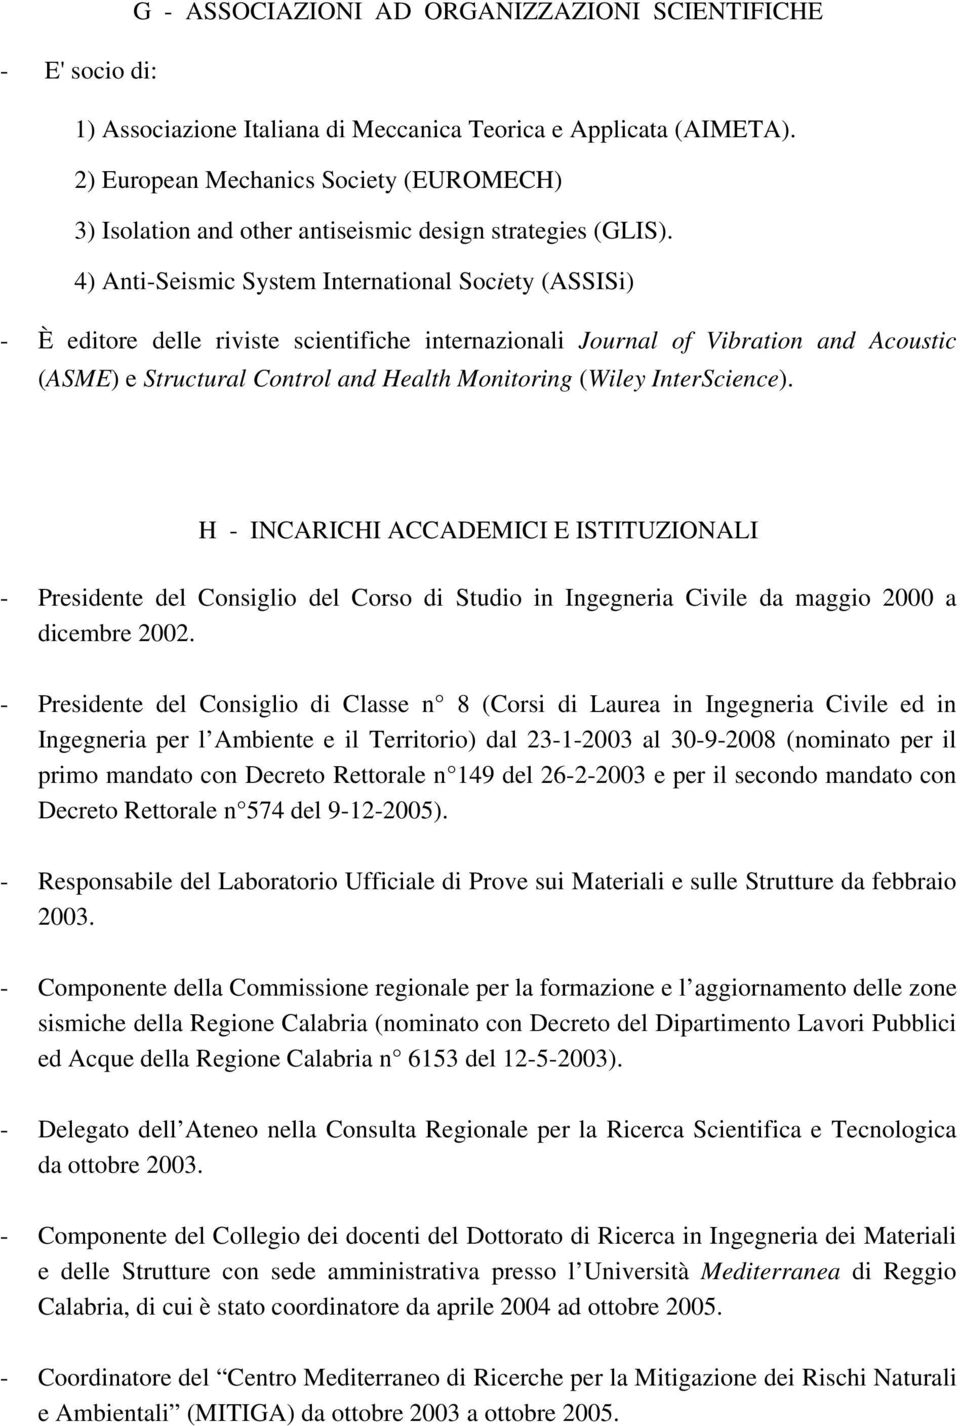 4) Anti-Seismic System International Society (ASSISi) - È editore delle riviste scientifiche internazionali Journal of Vibration and Acoustic (ASME) e Structural Control and Health Monitoring (Wiley